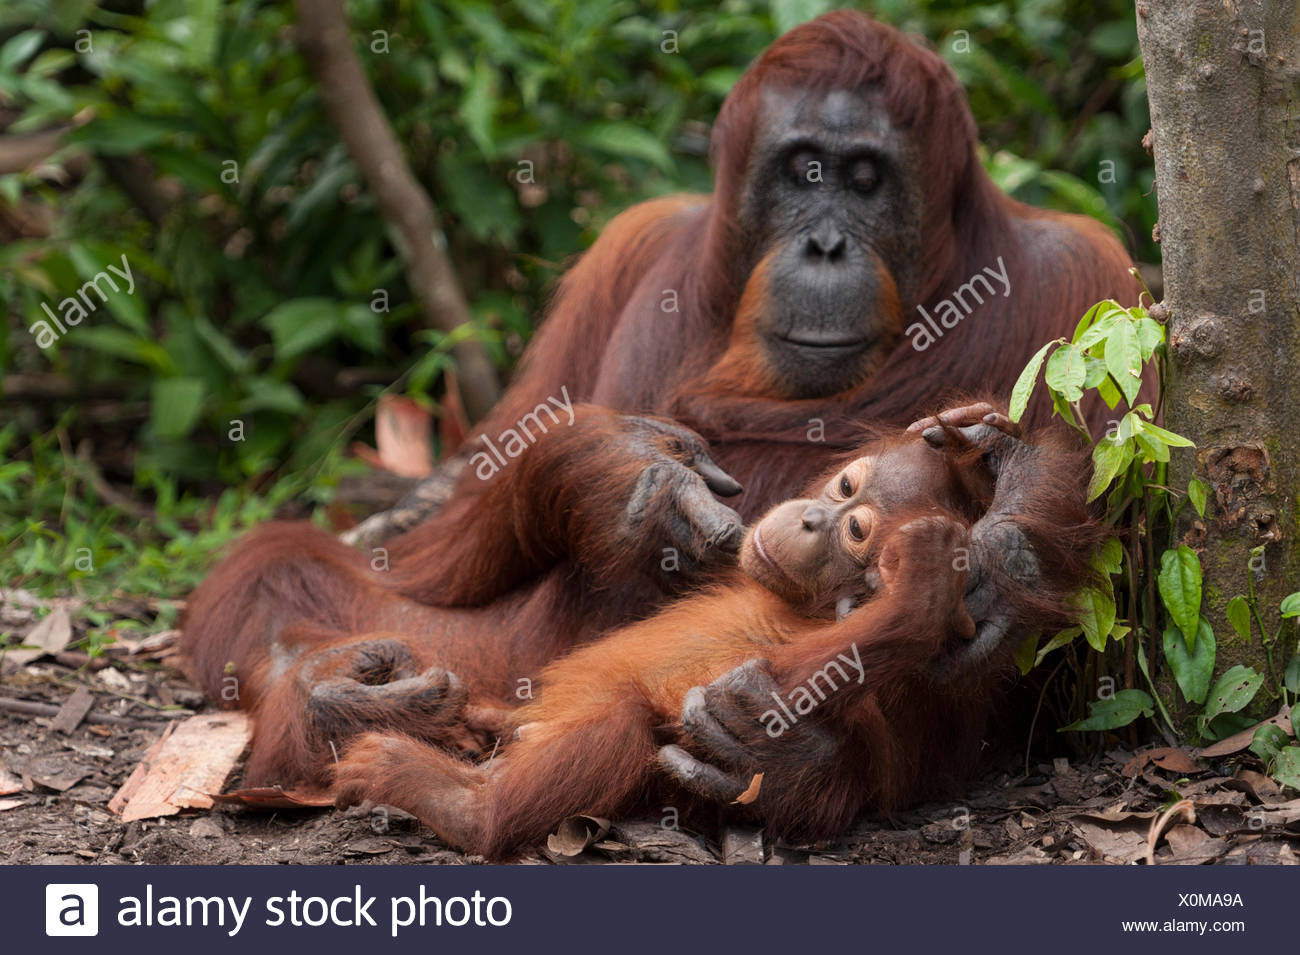 Bornean Orangutan (Pongo pygmaeus wurmbii) mother and baby, Tanjung Puting National Park, Borneo, Central Kalimantan, Indonesia.  Endangered species. - Stock Image